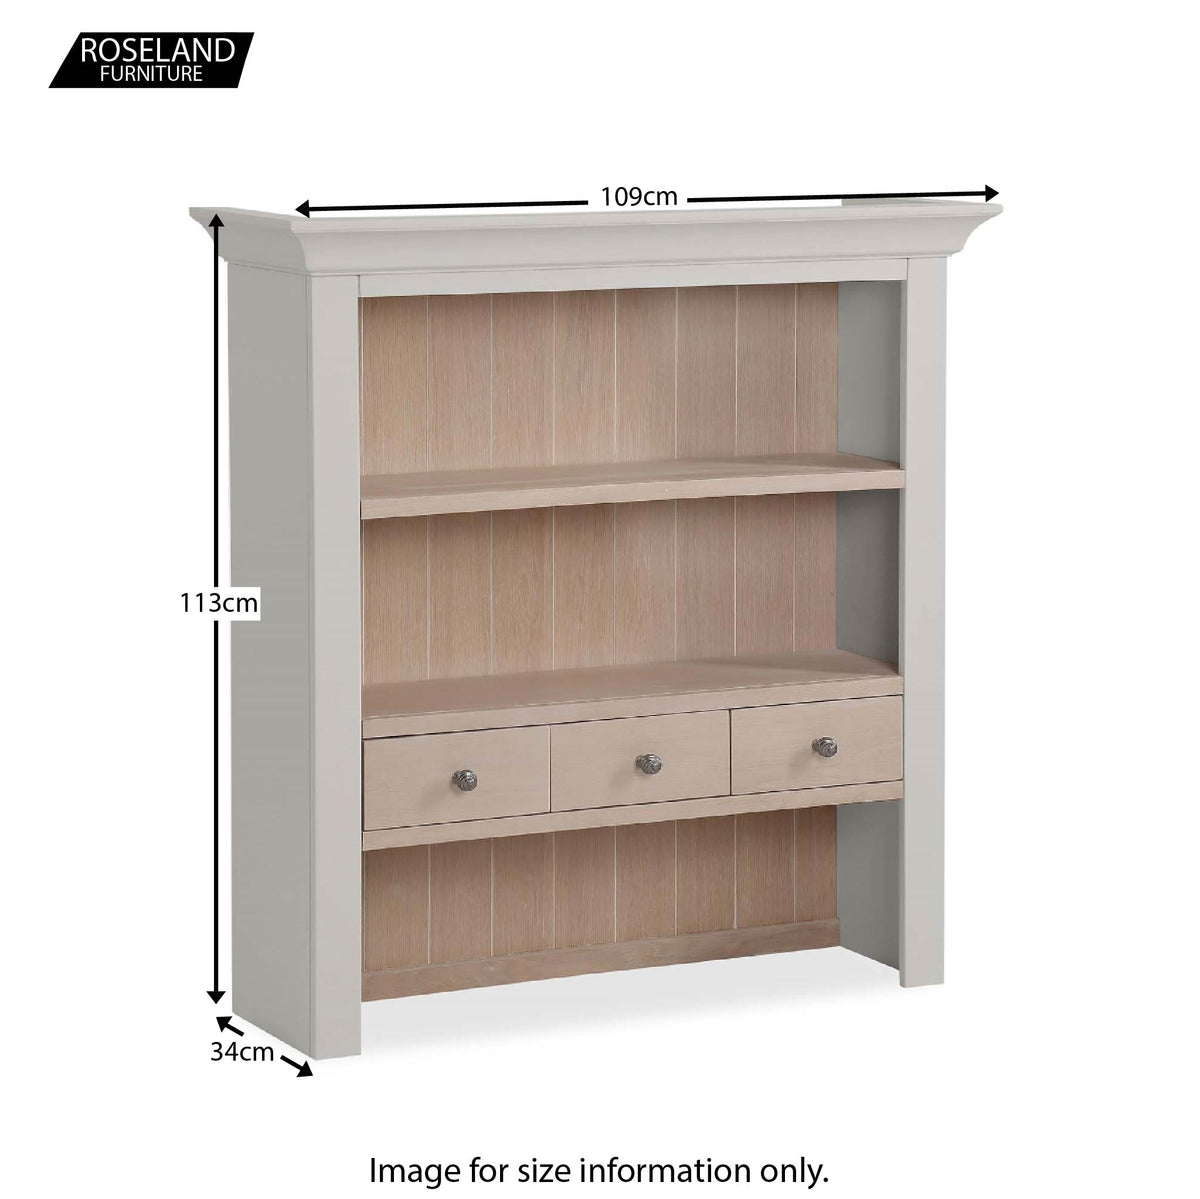 Dimensions for the Melrose Grey Small Open Dresser Hutch from Roseland Furniture